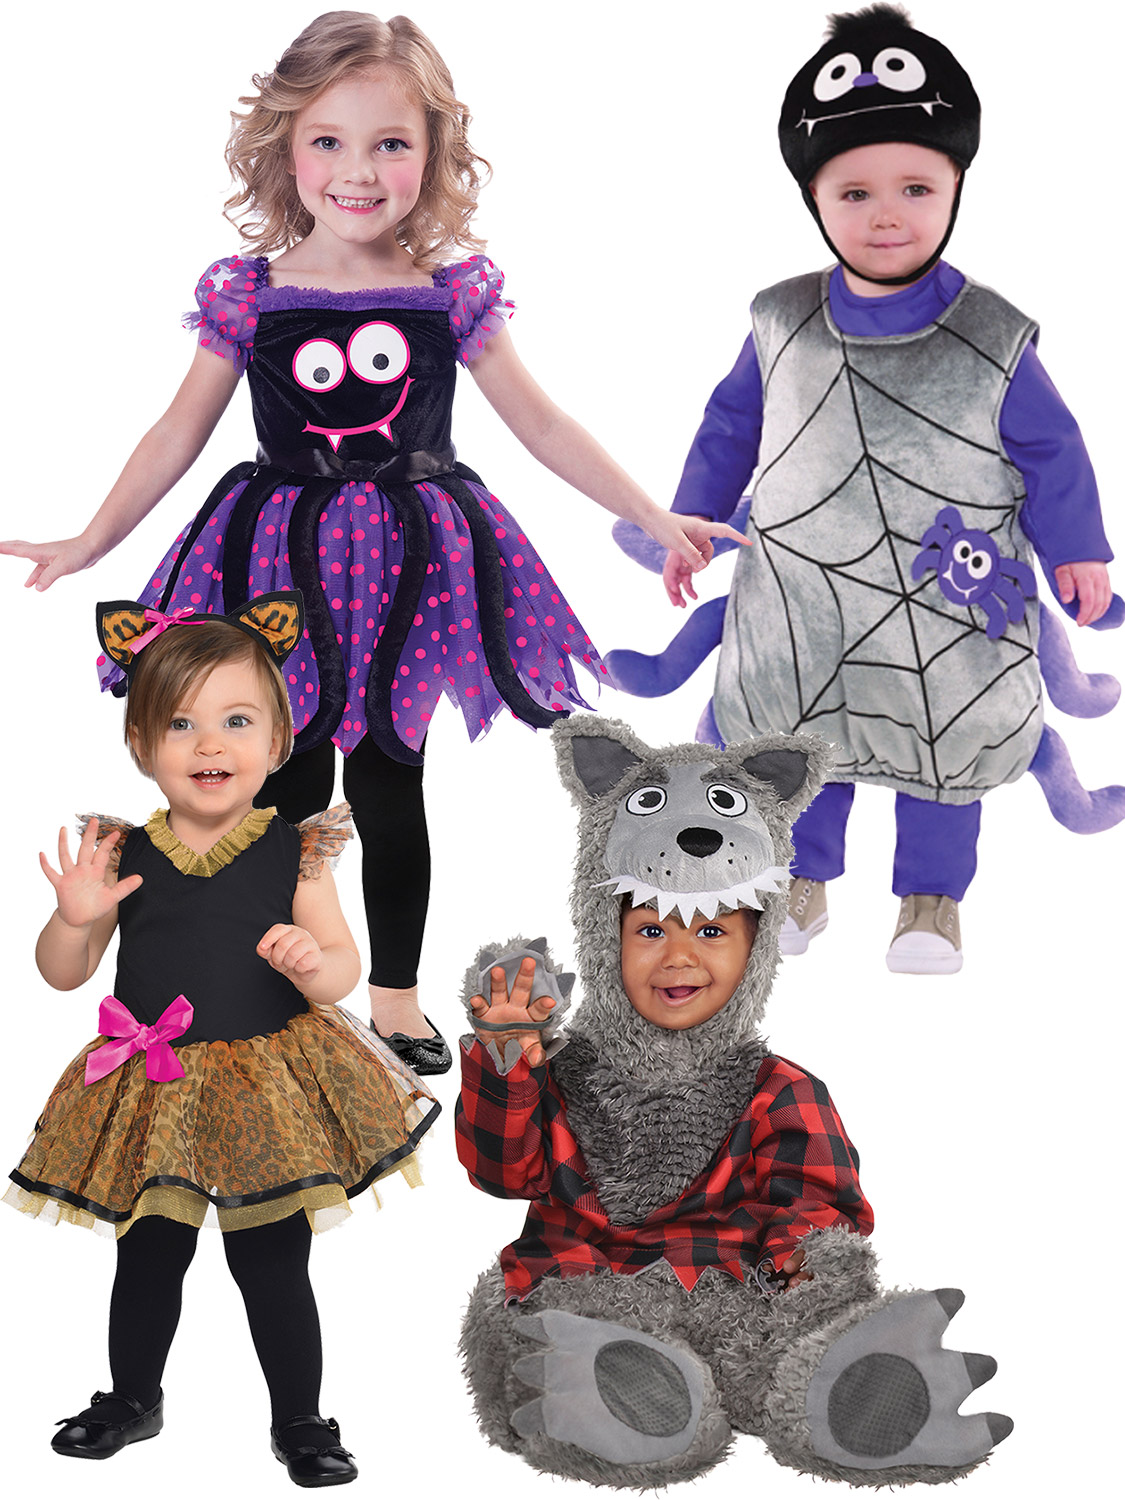 Baby Boy And Girl Matching Halloween Costumes.Toddler Halloween Costume Spider Cat Wolf Baby Fancy Dress